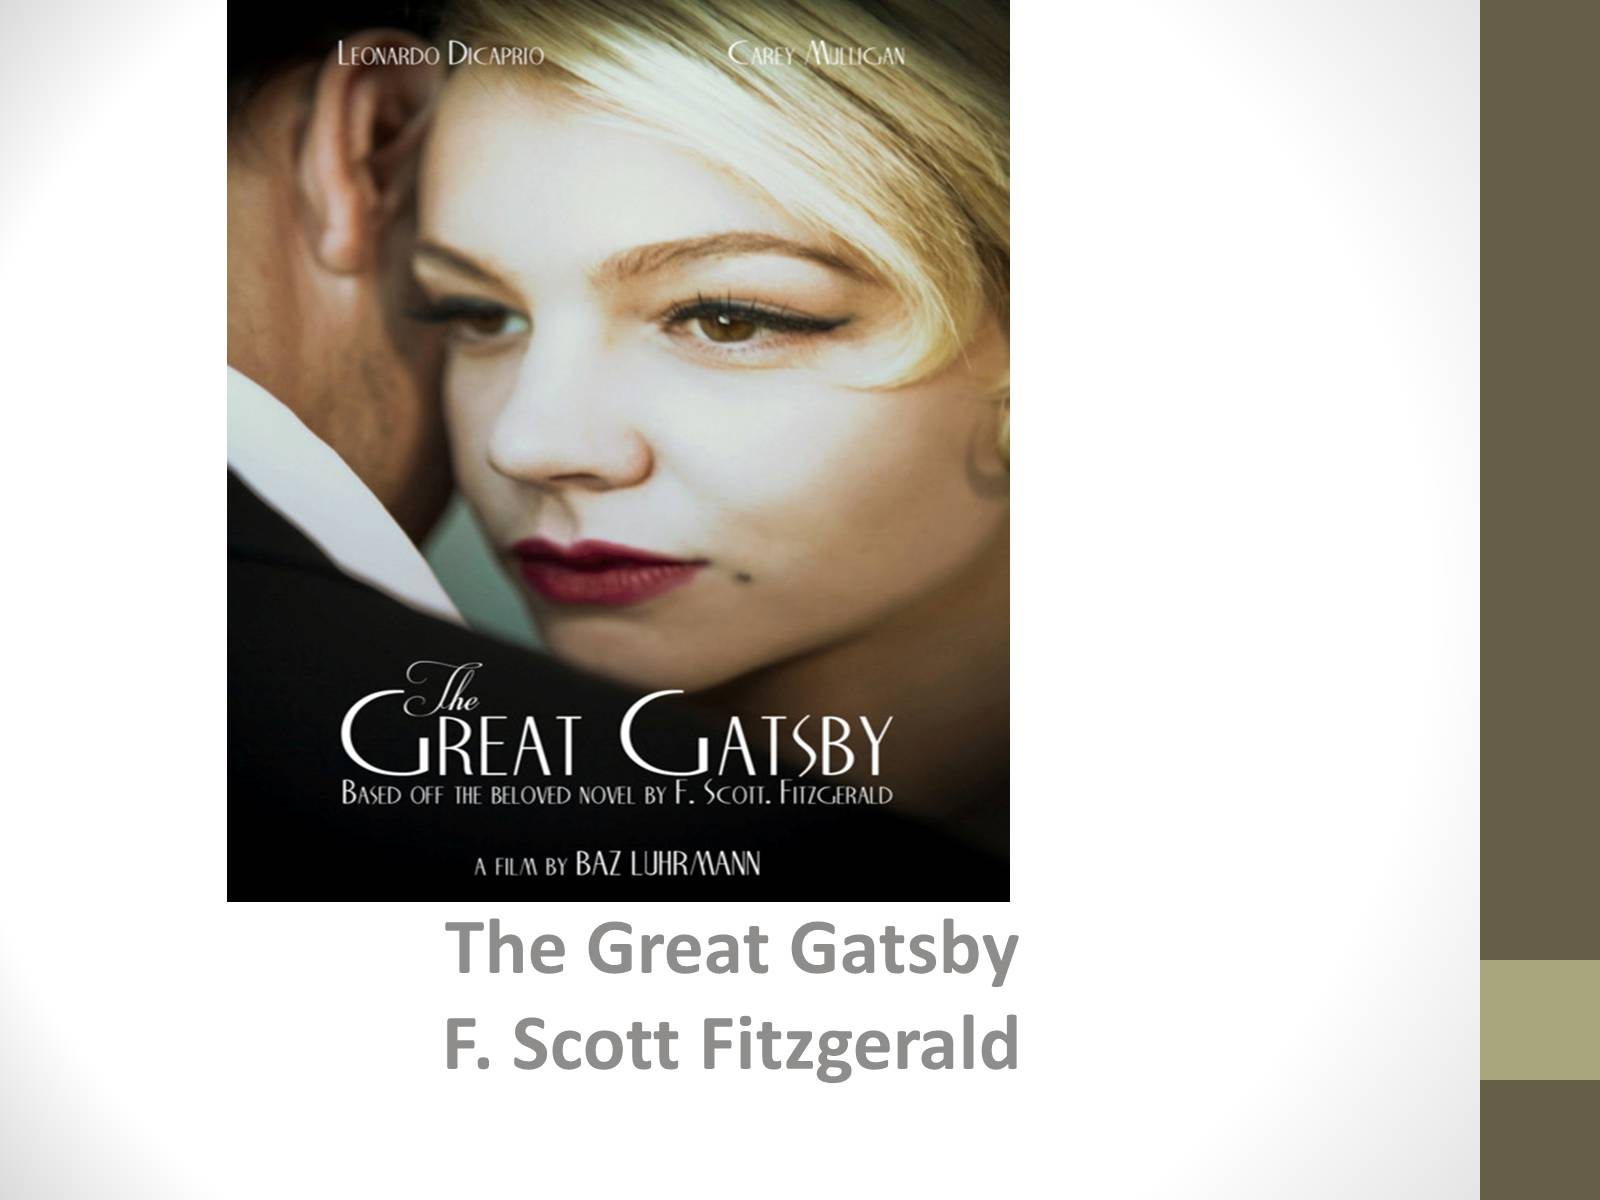 gatsbys love for daisy in the great gatsby by f scott fitzgerald Daisy buchanan is the source of jay gatsby's greatest fantasies, the golden girl described as having a voice full of money as f scott fitzgerald's twisted 1920s version of a manic pixie.